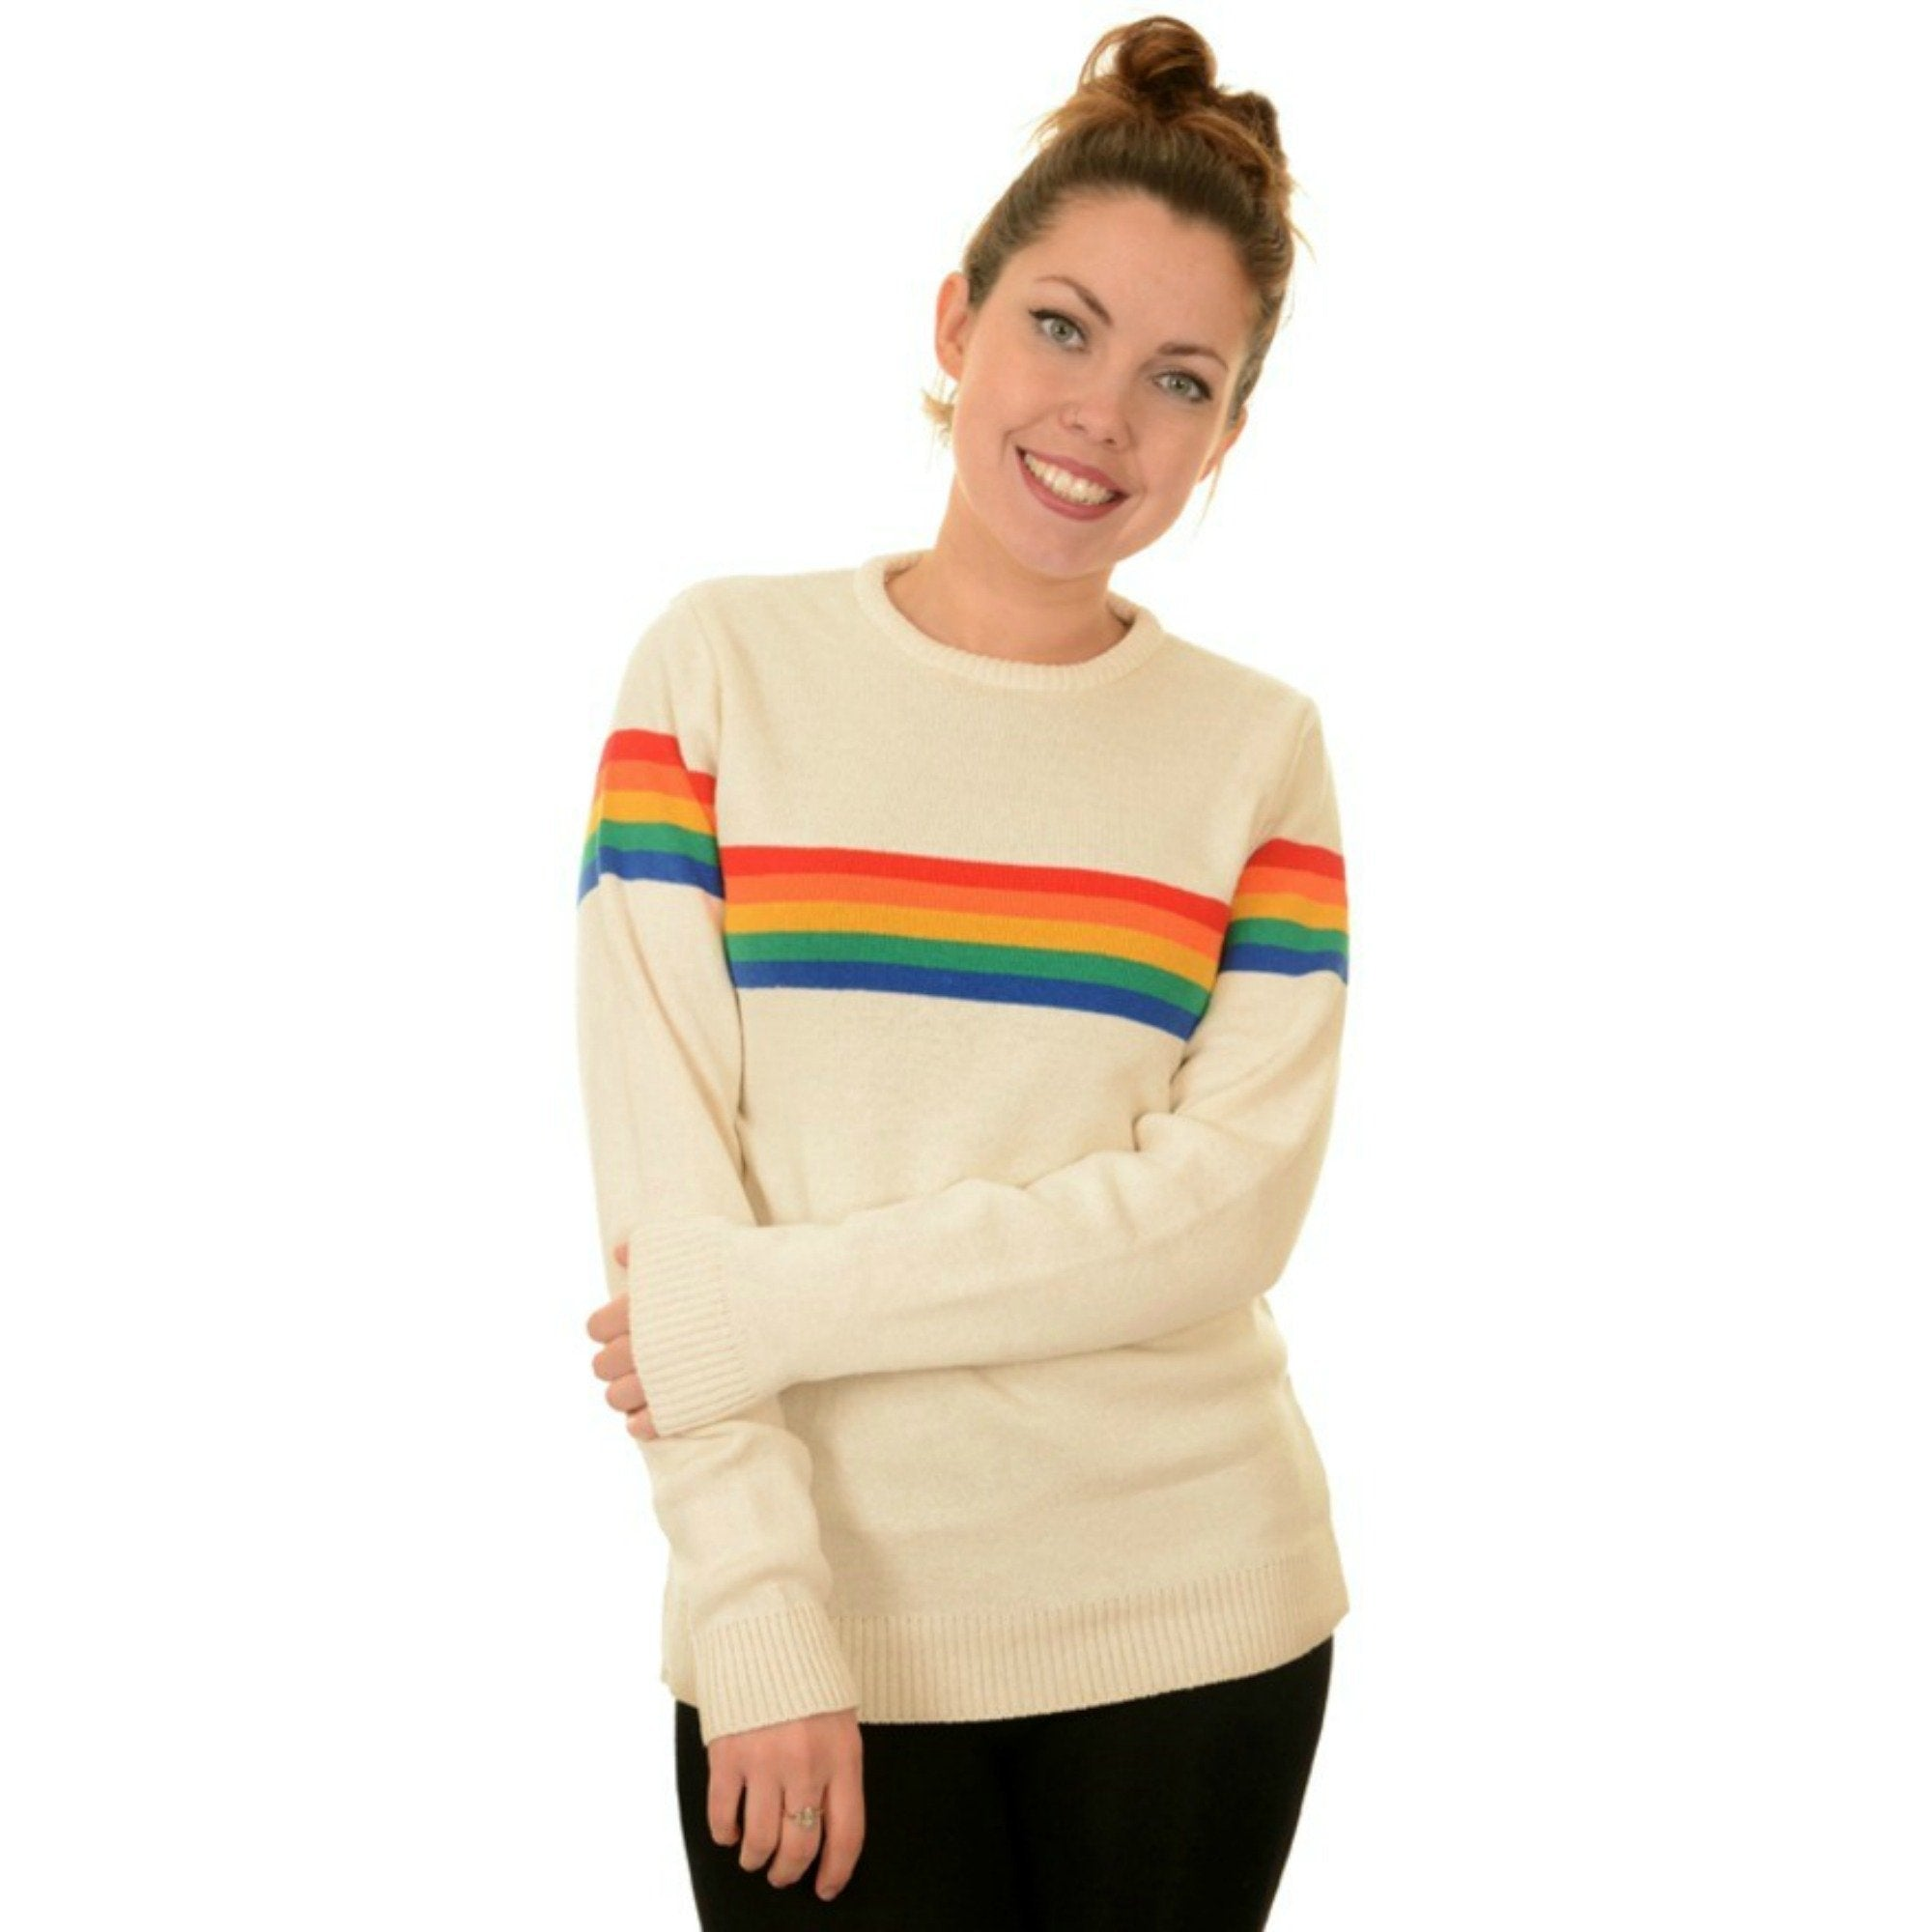 Retro Rainbow Stripe Jumper by Run and Fly in Ecru - Minimum Mouse